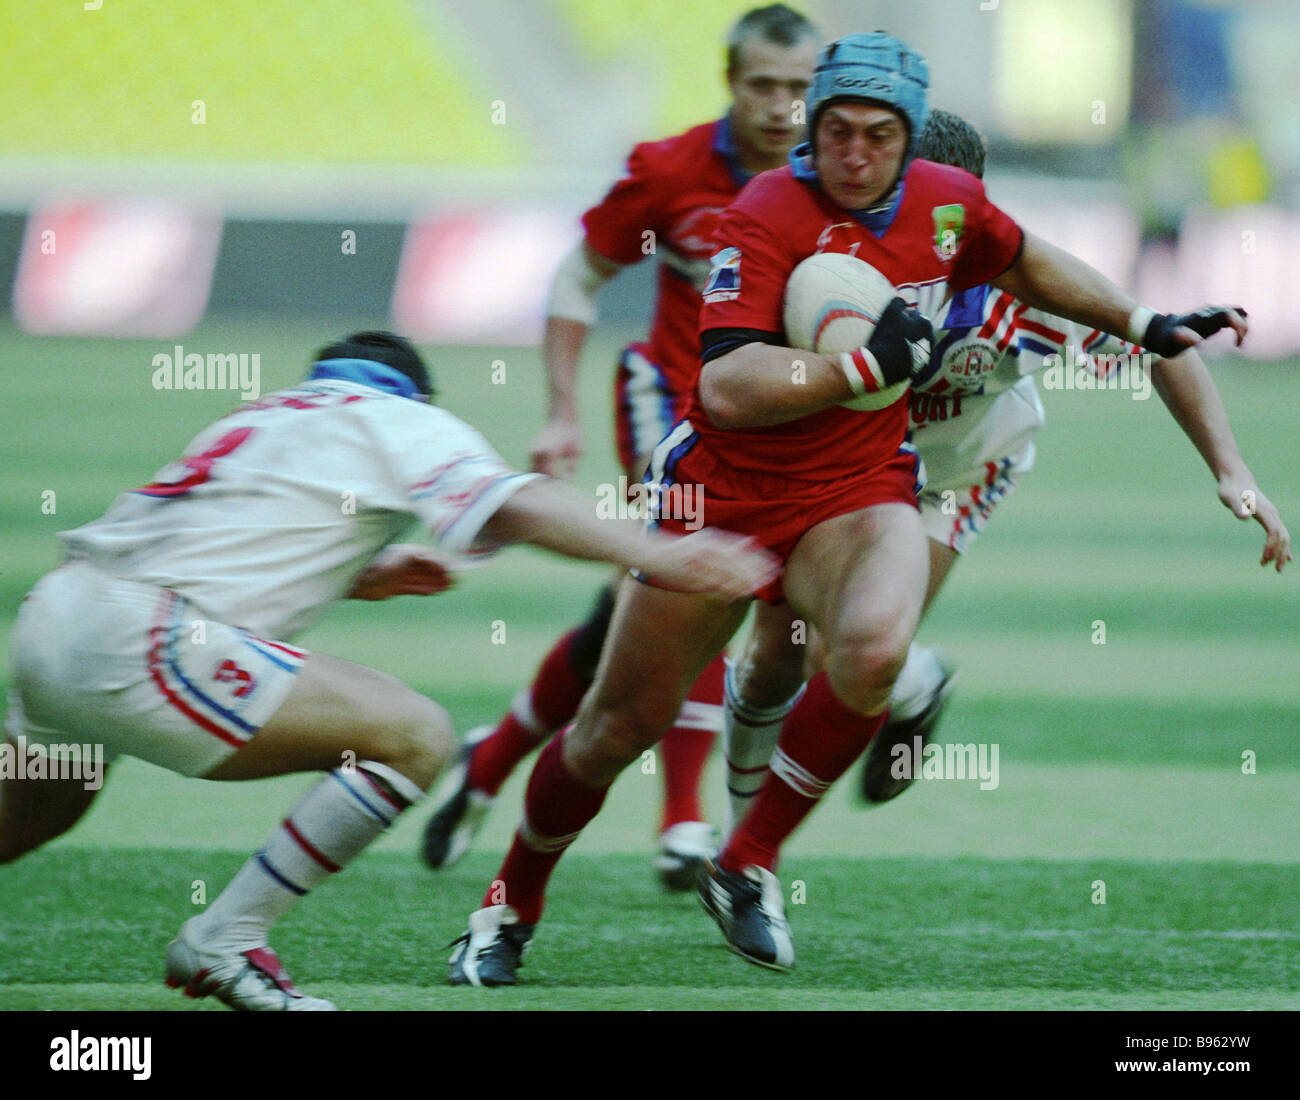 Victory Cup finals between Russia s and Britain s Rugby League selects Luzhniki stadium s Grand arena - Stock Image